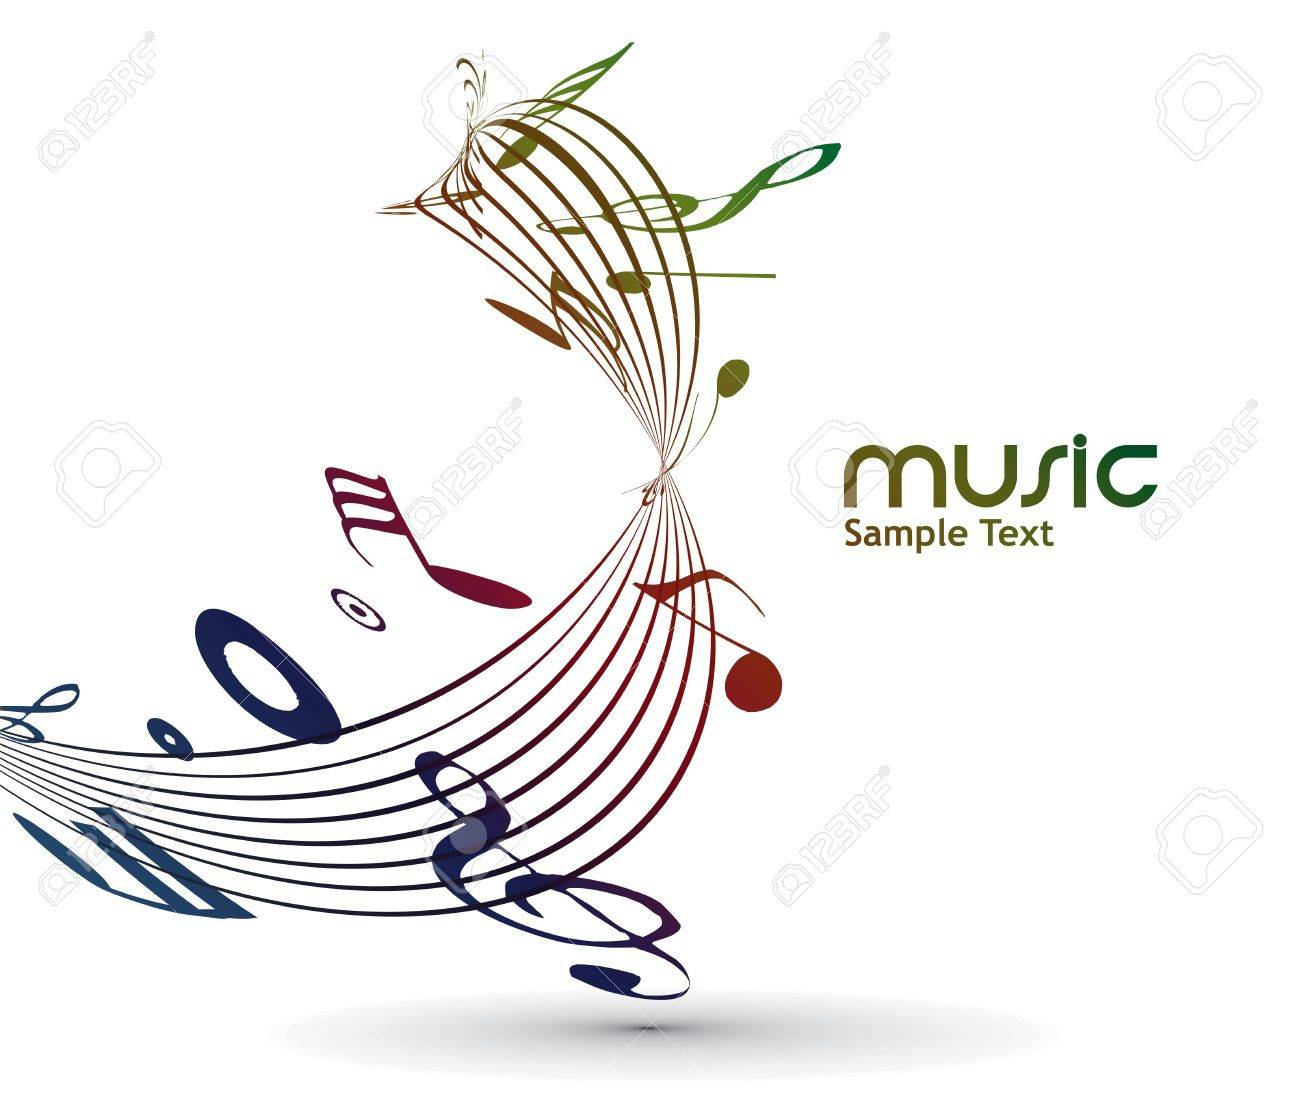 abstract musical notes background for design use. Stock Vector - 9543038